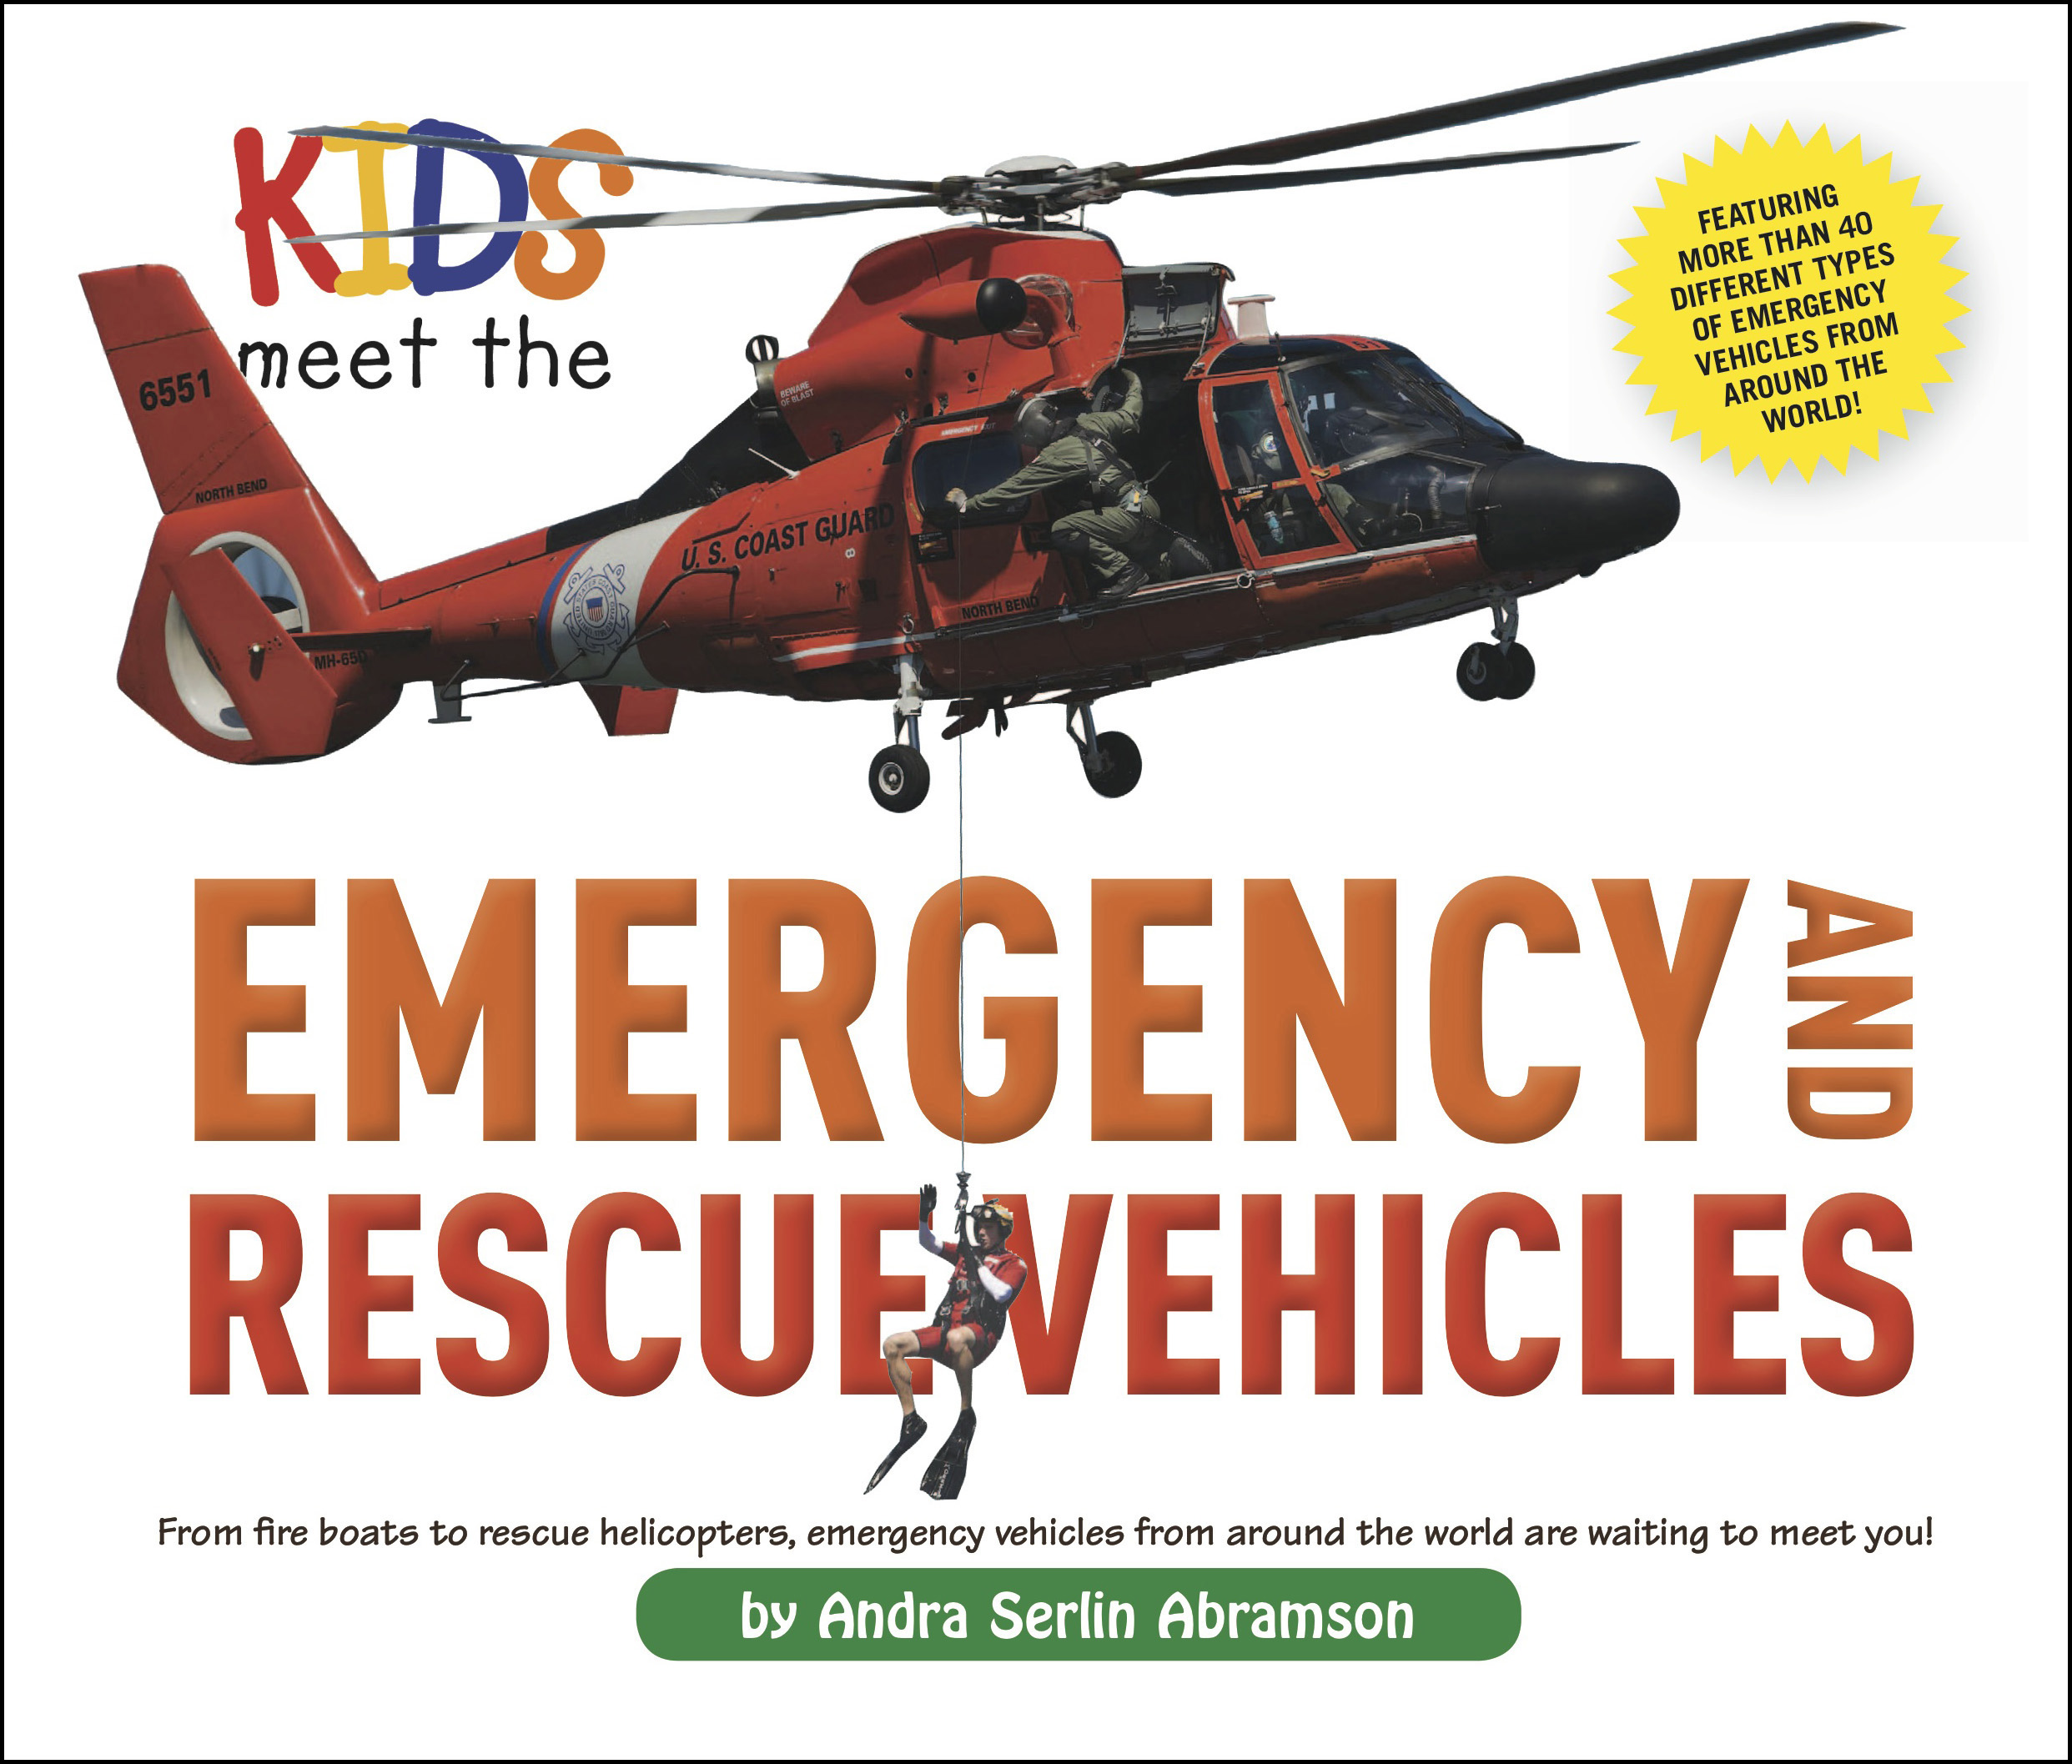 Kids-meet-the-emergency-and-rescue-vehicles-9781604334685_hr